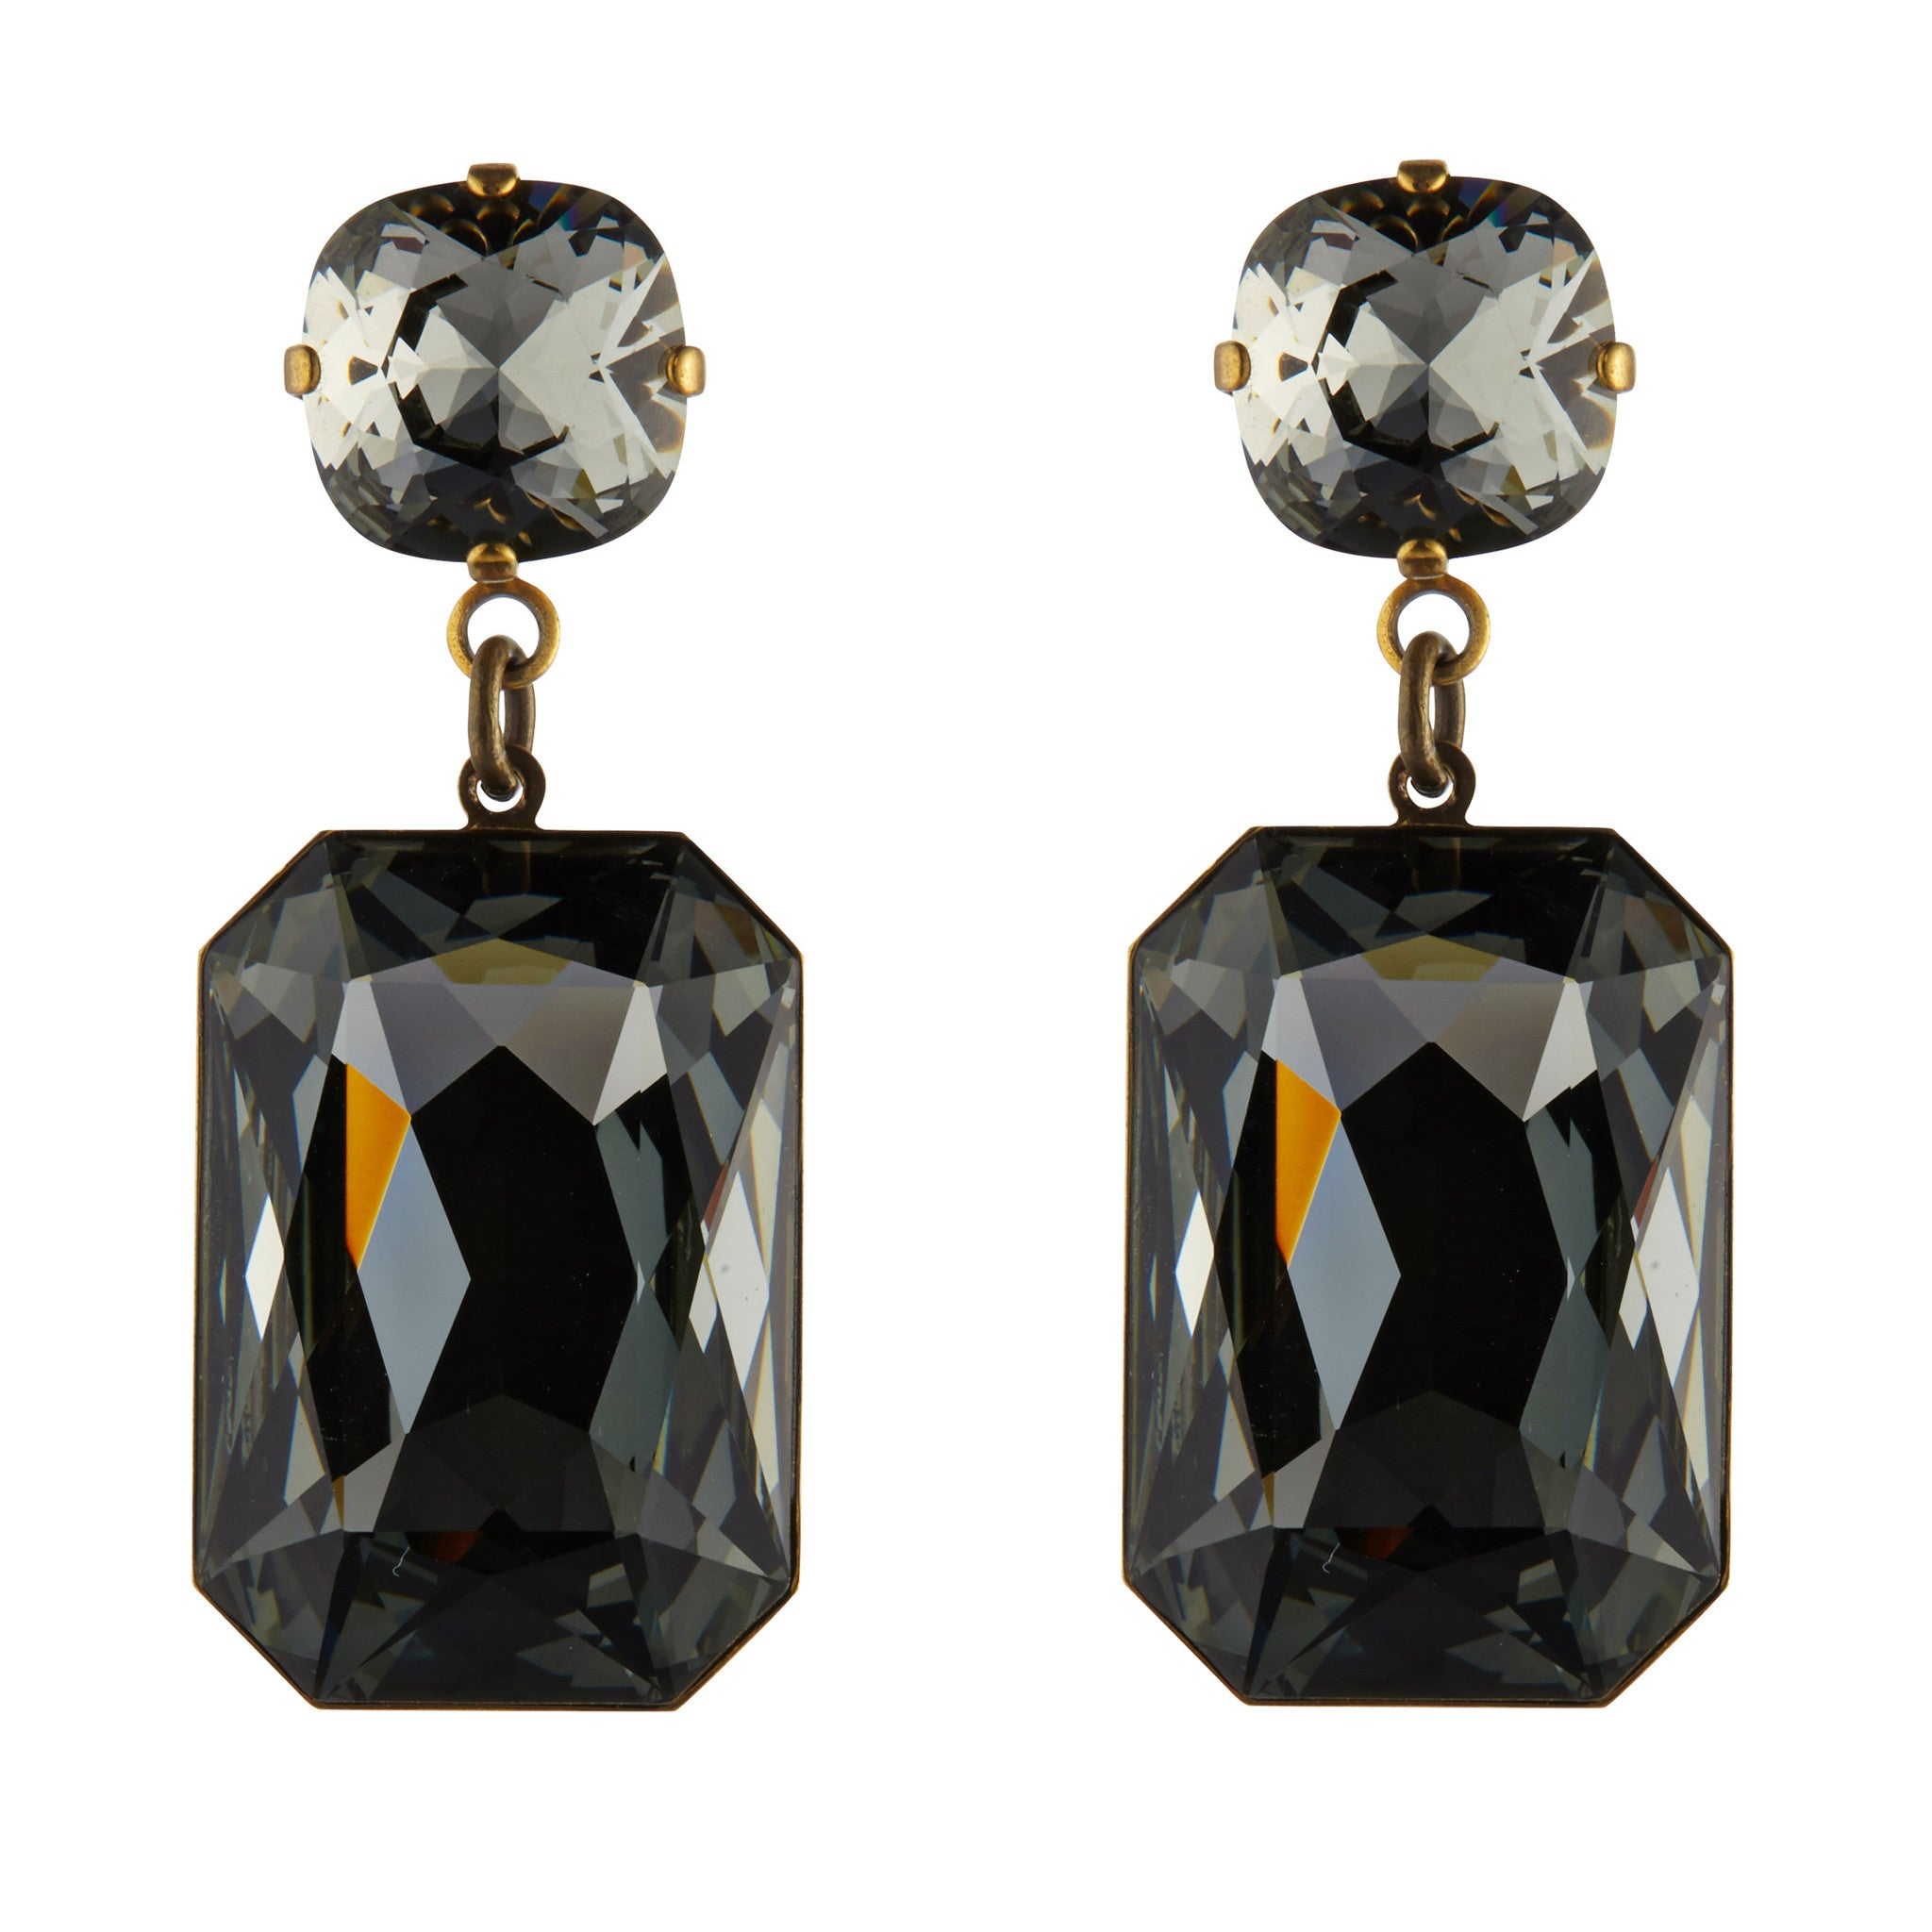 Large Grey Swarovski Slab Earrings by Merle O'Grady - MoMuse Jewellery